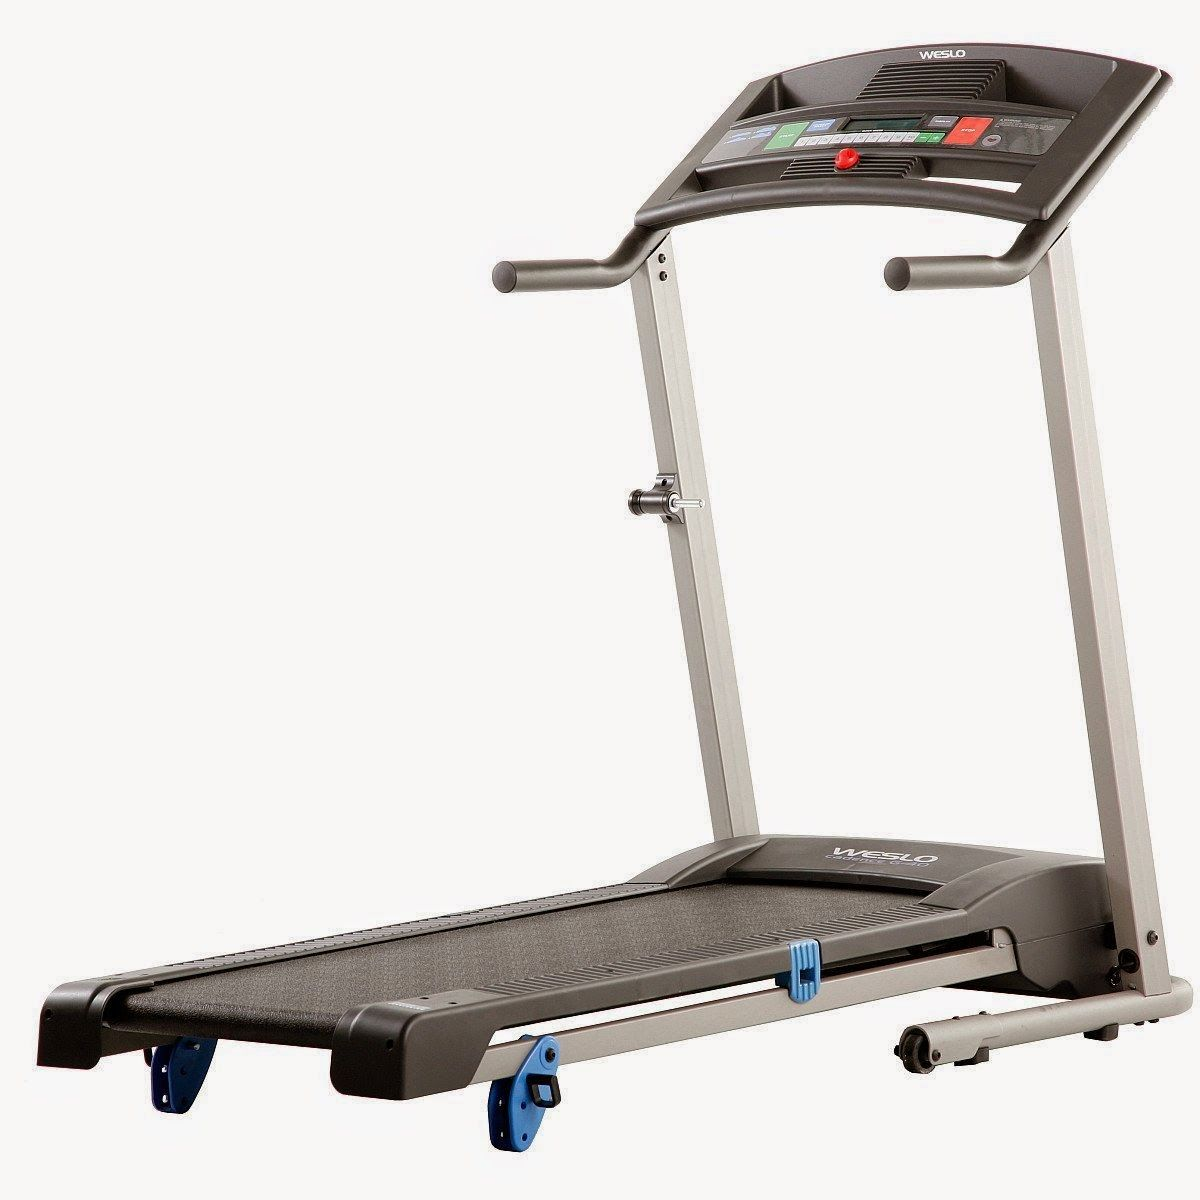 Weslo Cadence G40 Treadmill The Best Home Losing Weight Program